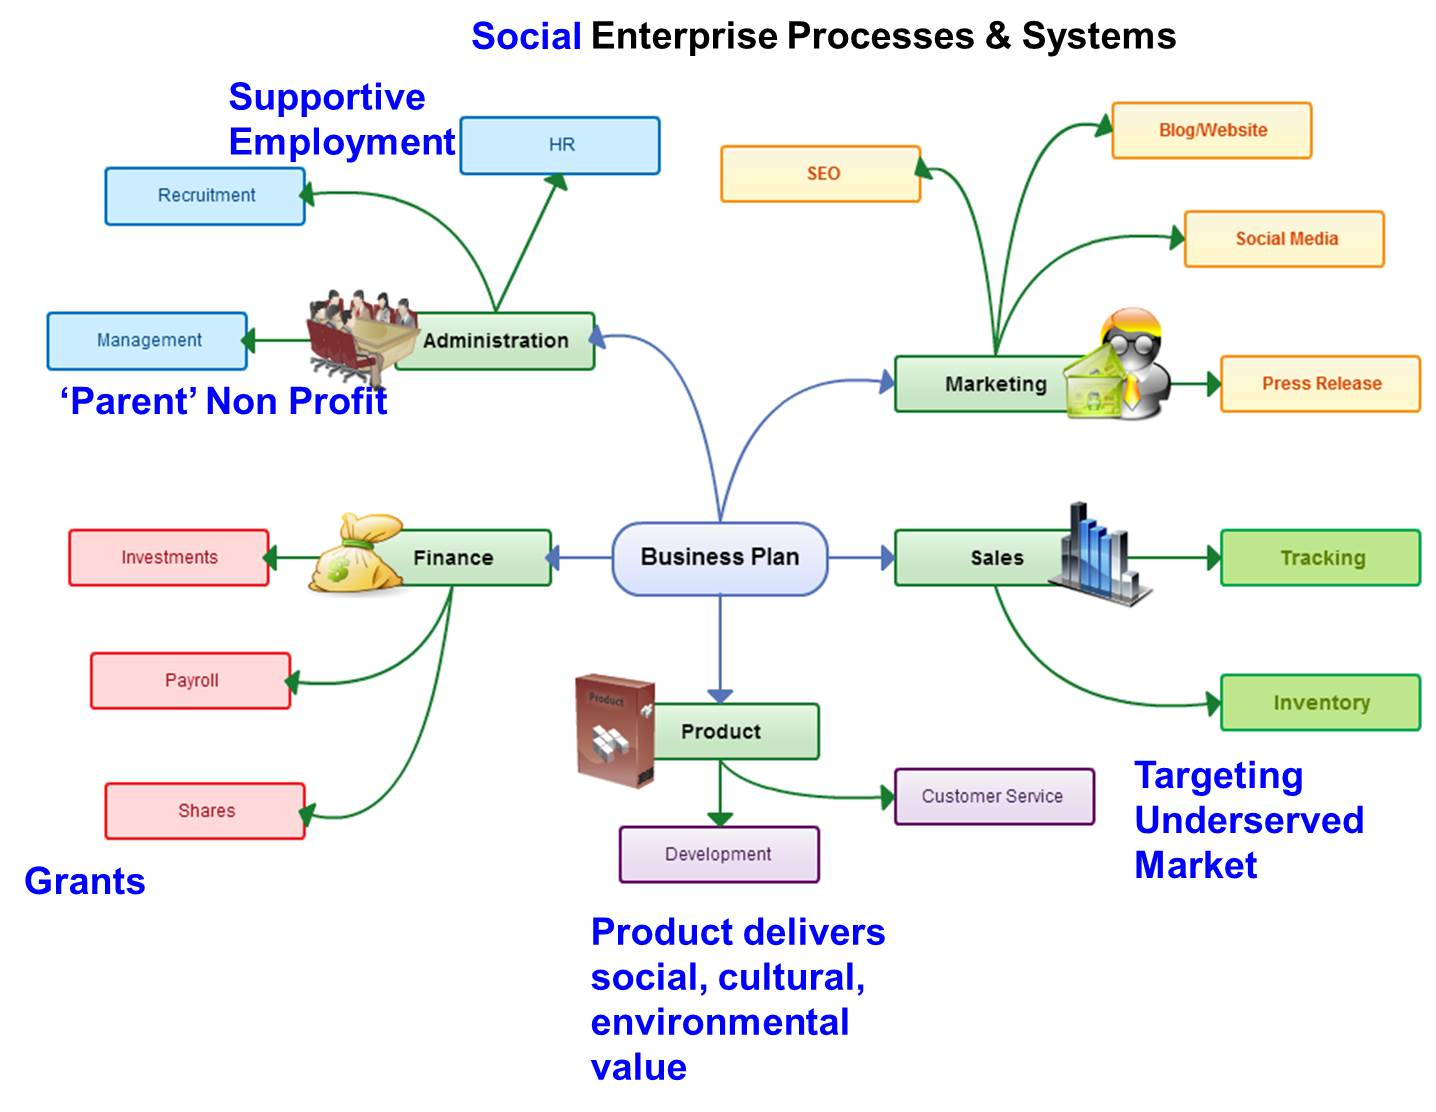 implementation of an enterprise level business system Executive education refers to academic programs at graduate-level business enterprise resource planning (erp) systems implementation of a new erp system.